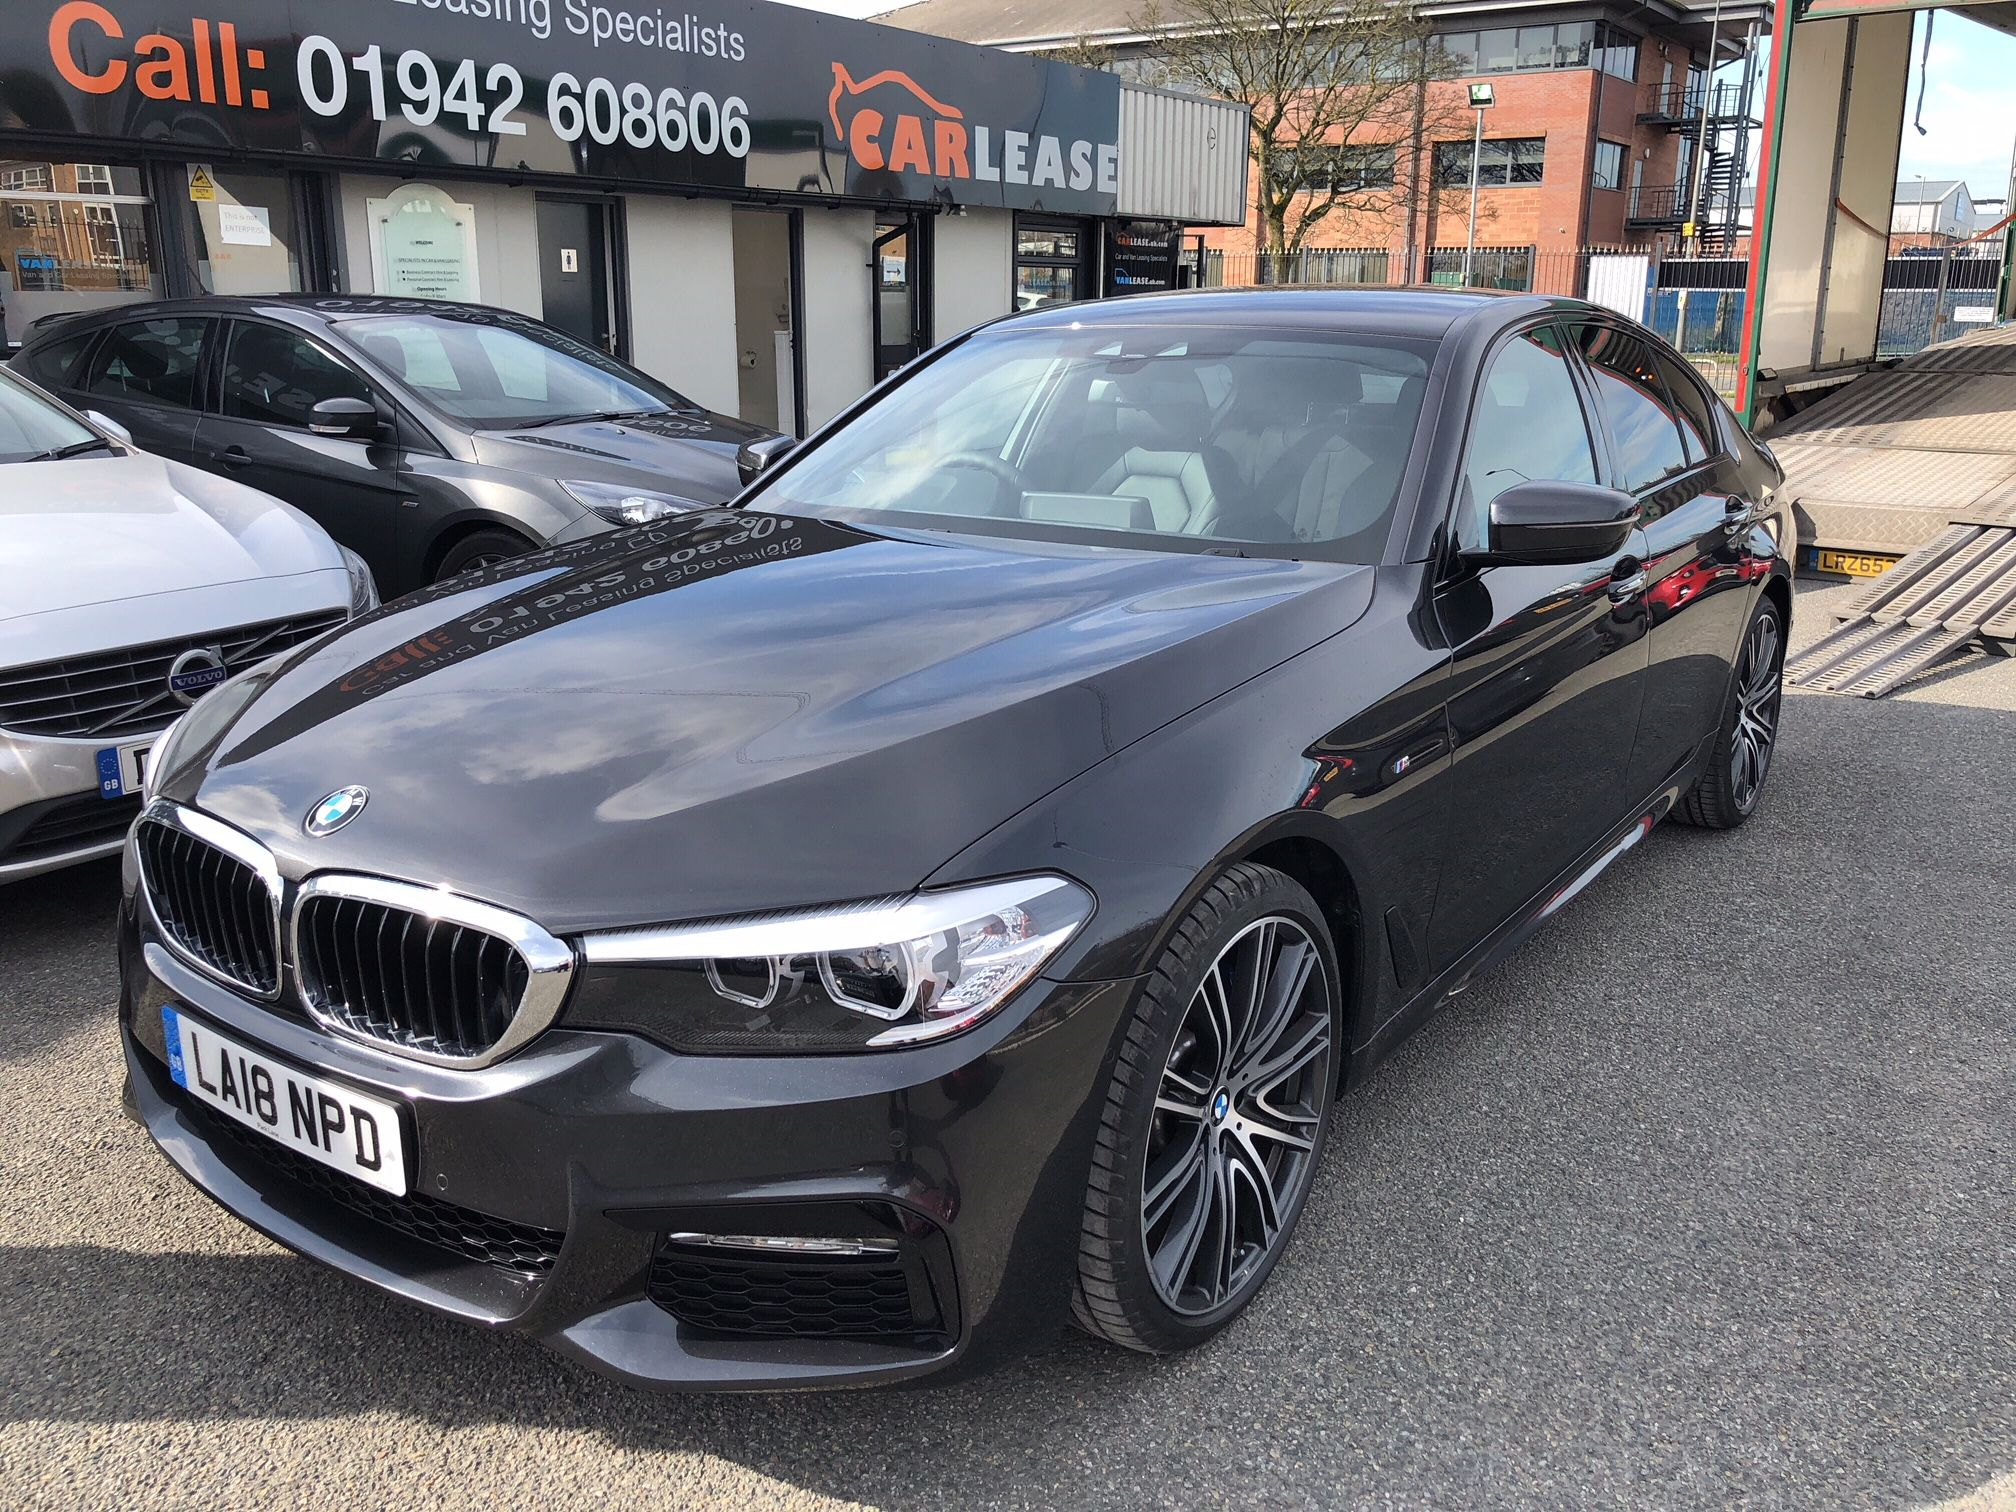 The Bmw 5 Series Diesel Saloon 530d M Sport 4door Auto Car Leasing